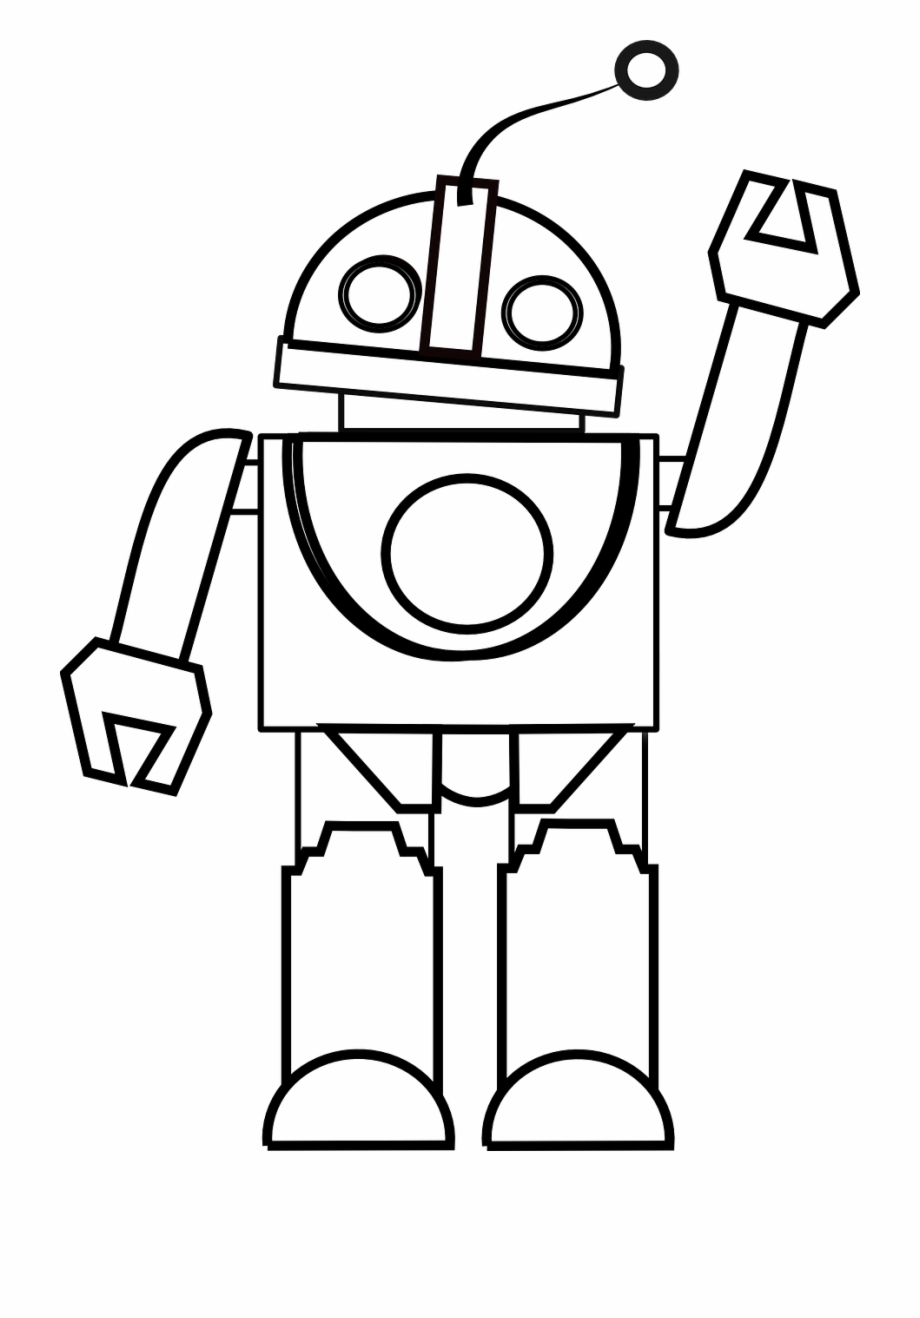 Toy black and white clipart clip art black and white Toy Clipart Black And White - Robot Black And White, Transparent Png ... clip art black and white